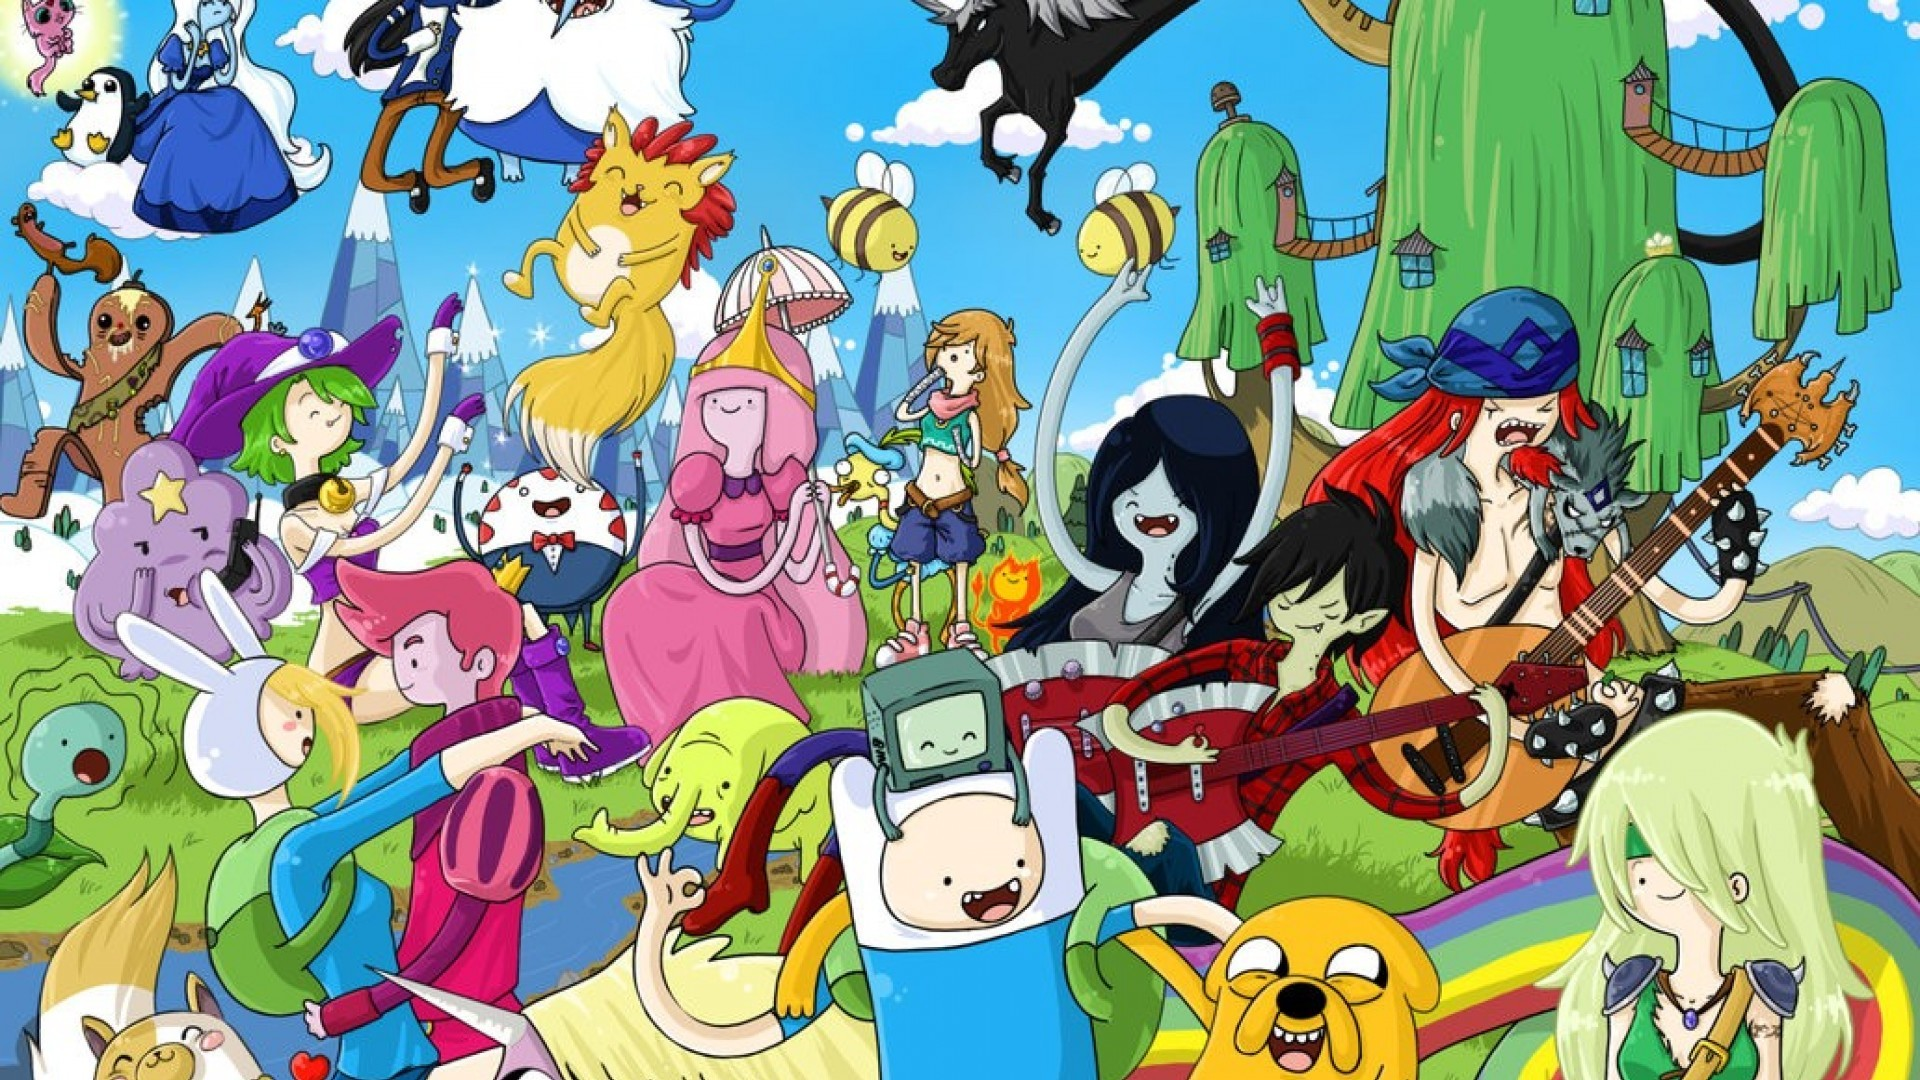 Adventure time wallpaper all characters adventure time wallpaper all characters voltagebd Choice Image